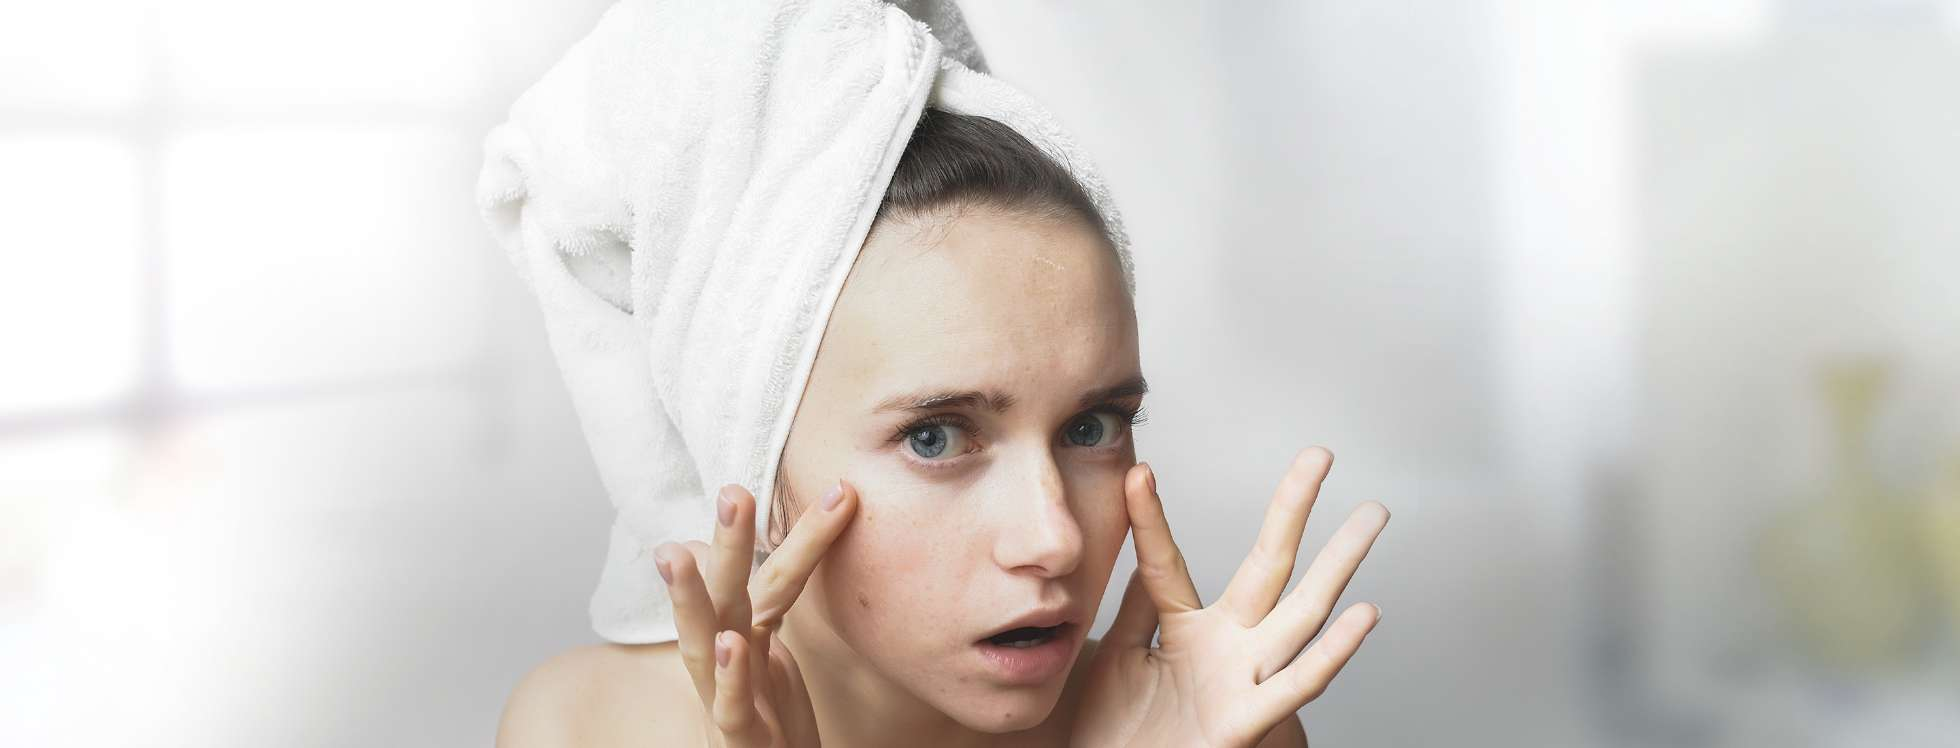 Girl looking at her skin in a bathroom mirror with a white towel wrapped around her head